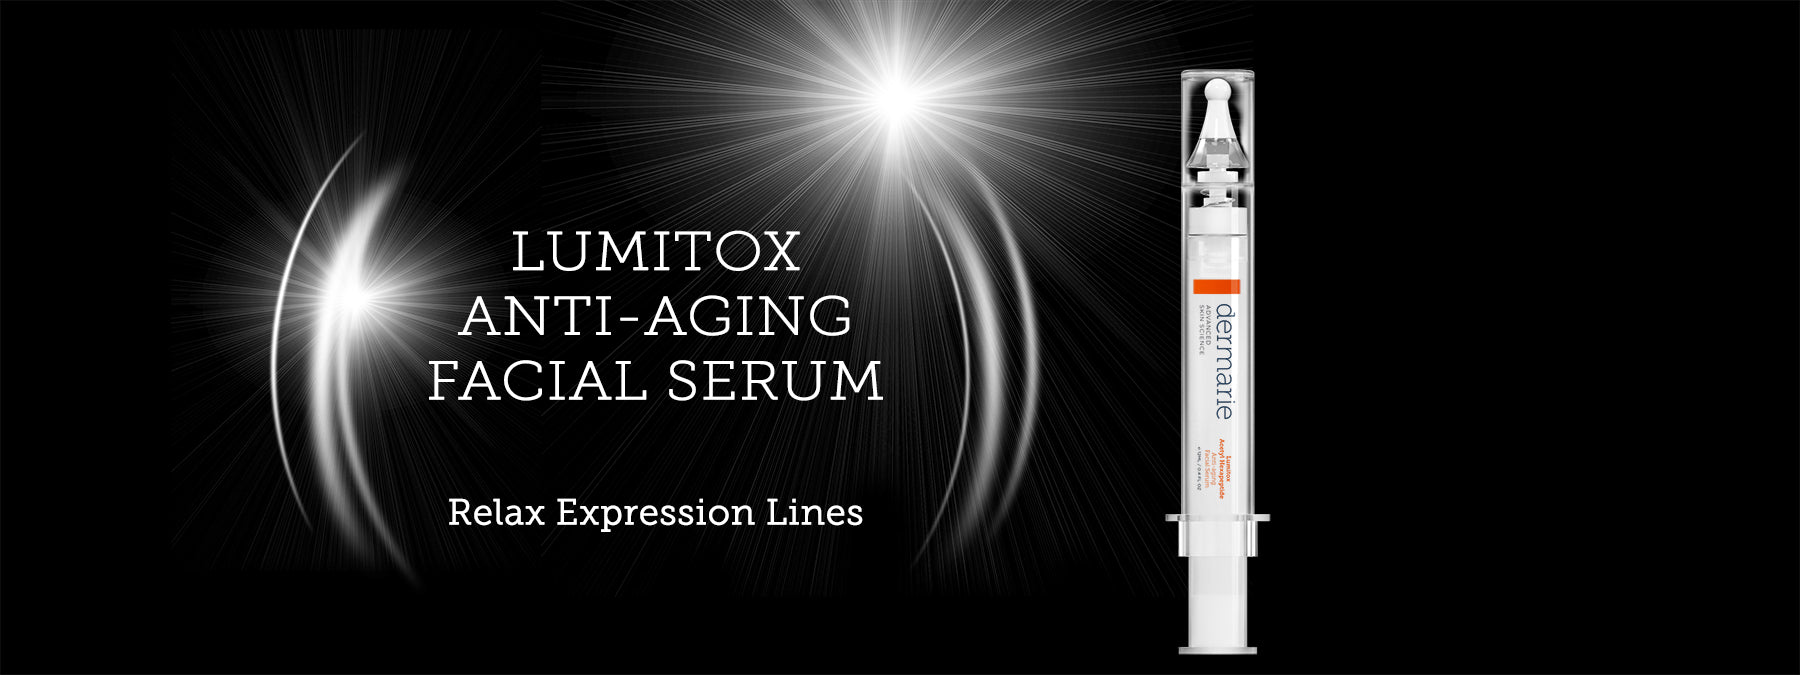 Lumitox Anti-aging Facial Serum for Expression Lines & Wrinkles